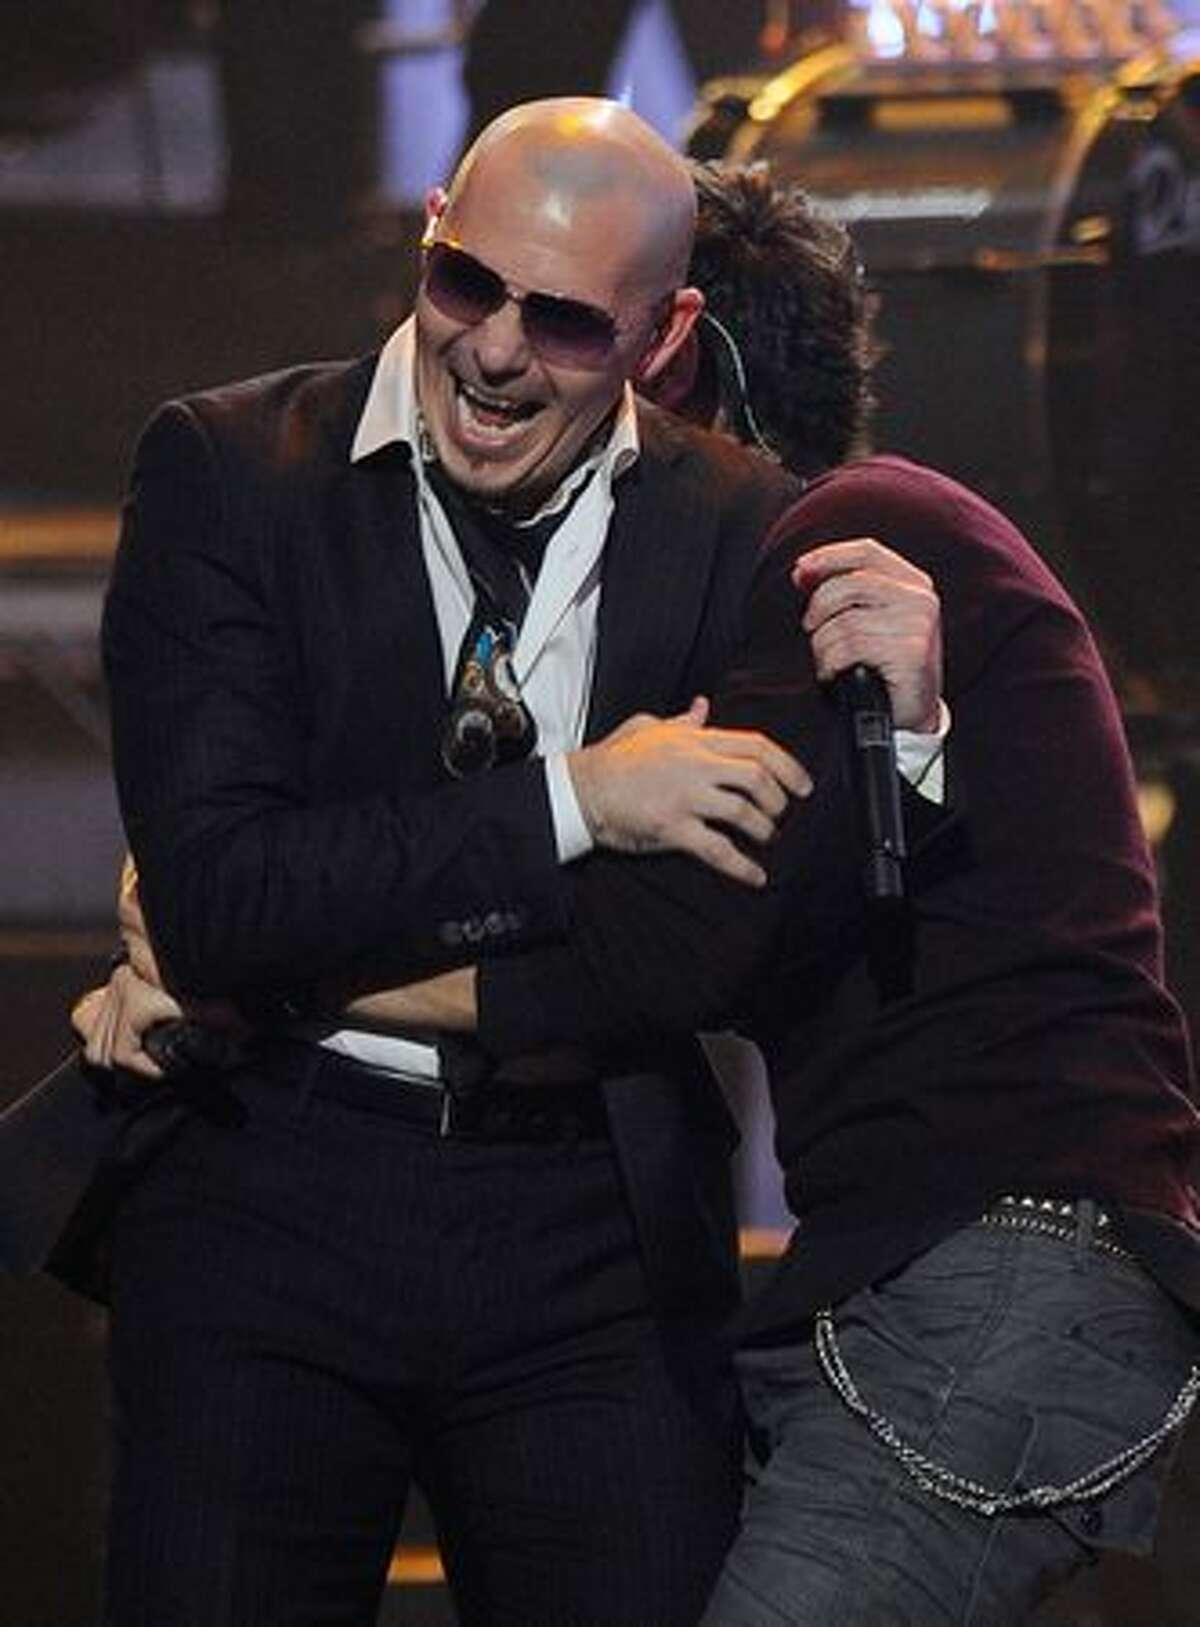 Singers Pitbull and Enrique Iglesias perform onstage during the 2010 American Music Awards held at Nokia Theatre L.A. Live in Los Angeles.